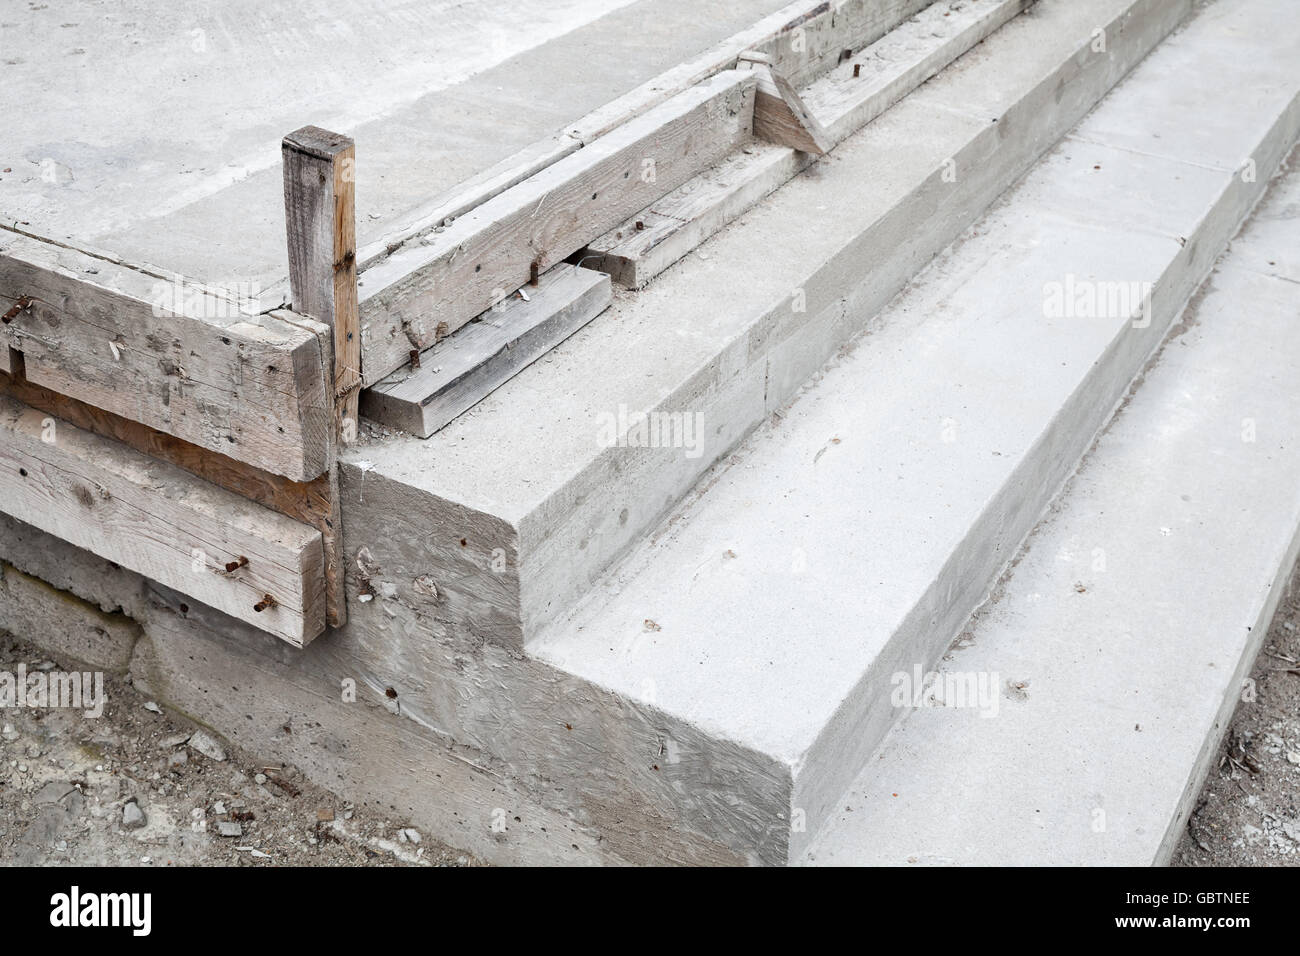 White Stairs Under Construction, Concrete Steps And Timber Forms